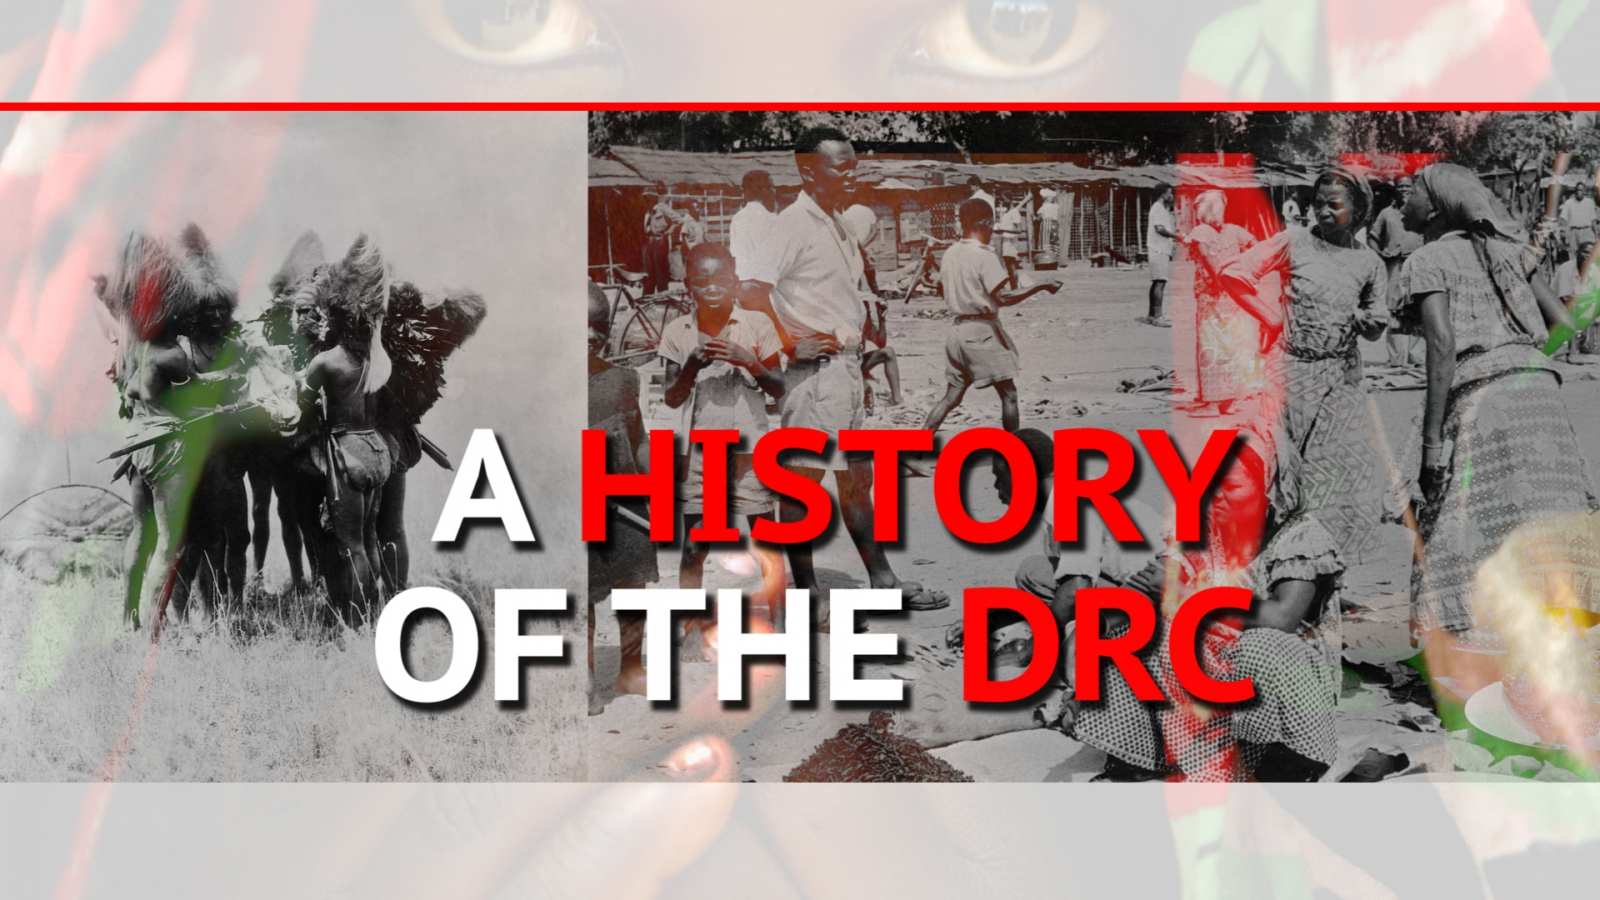 A history of the DRC